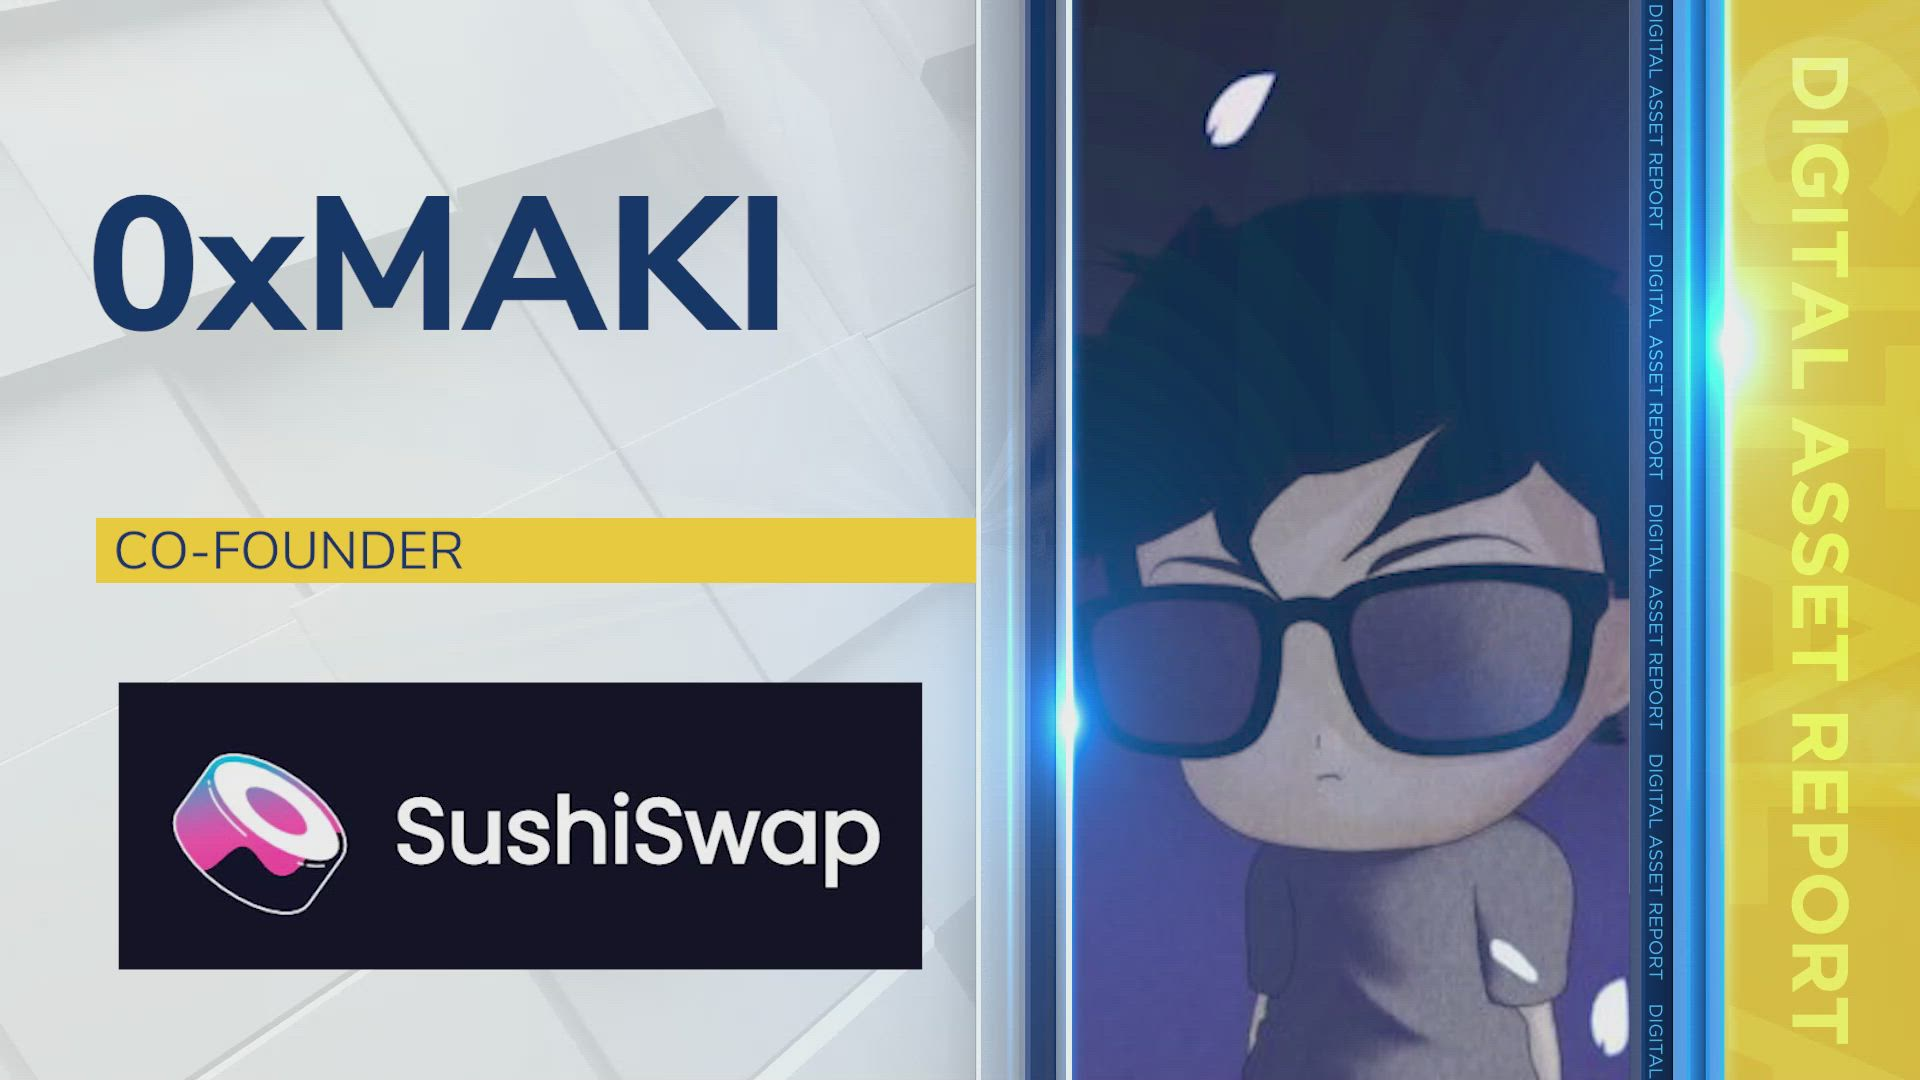 0xMaki, Co-Founder ofSushiswap